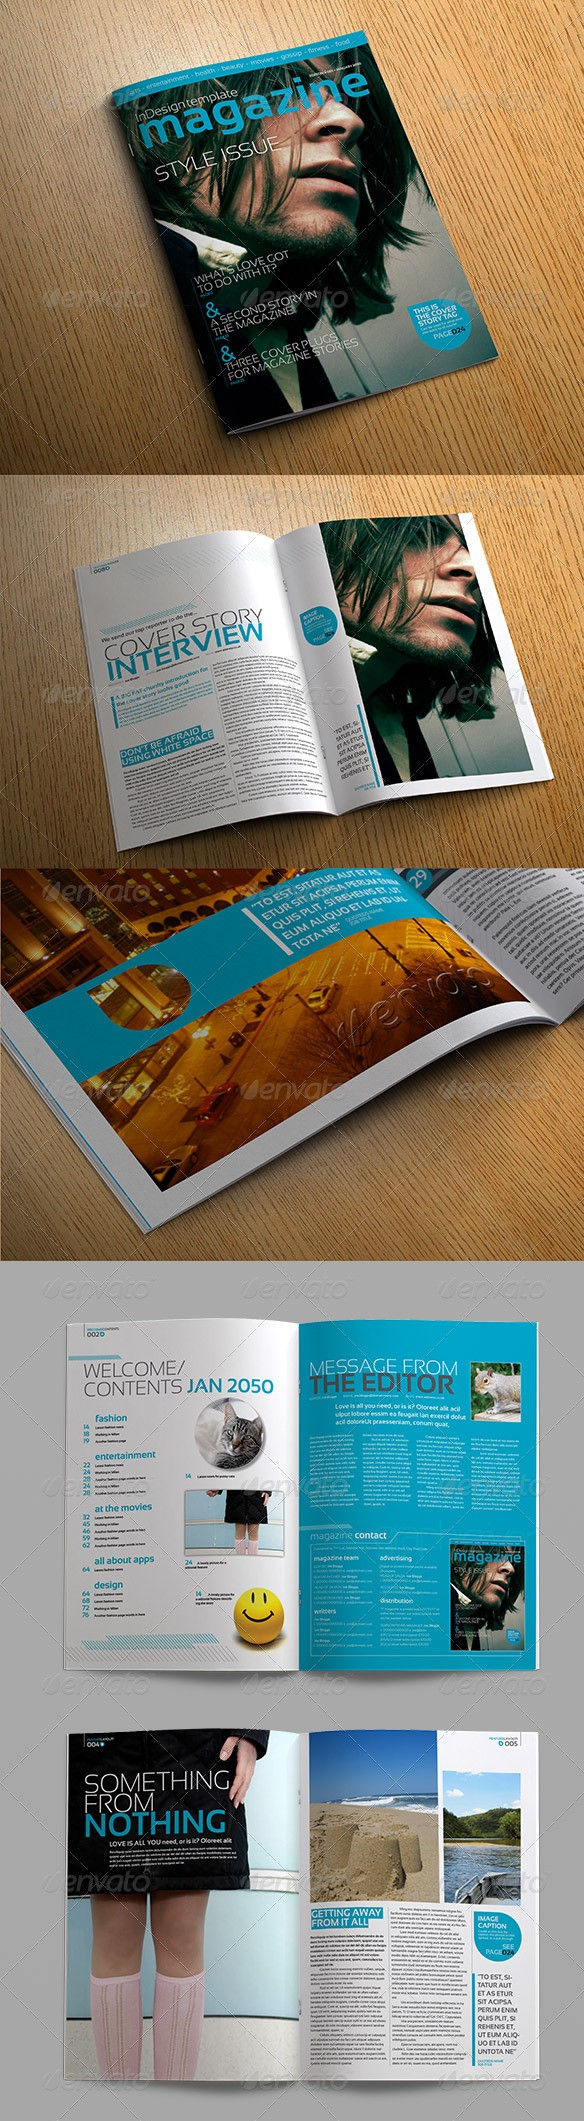 55+ Best Magazine Templates - Photoshop PSD & InDesign Download ...